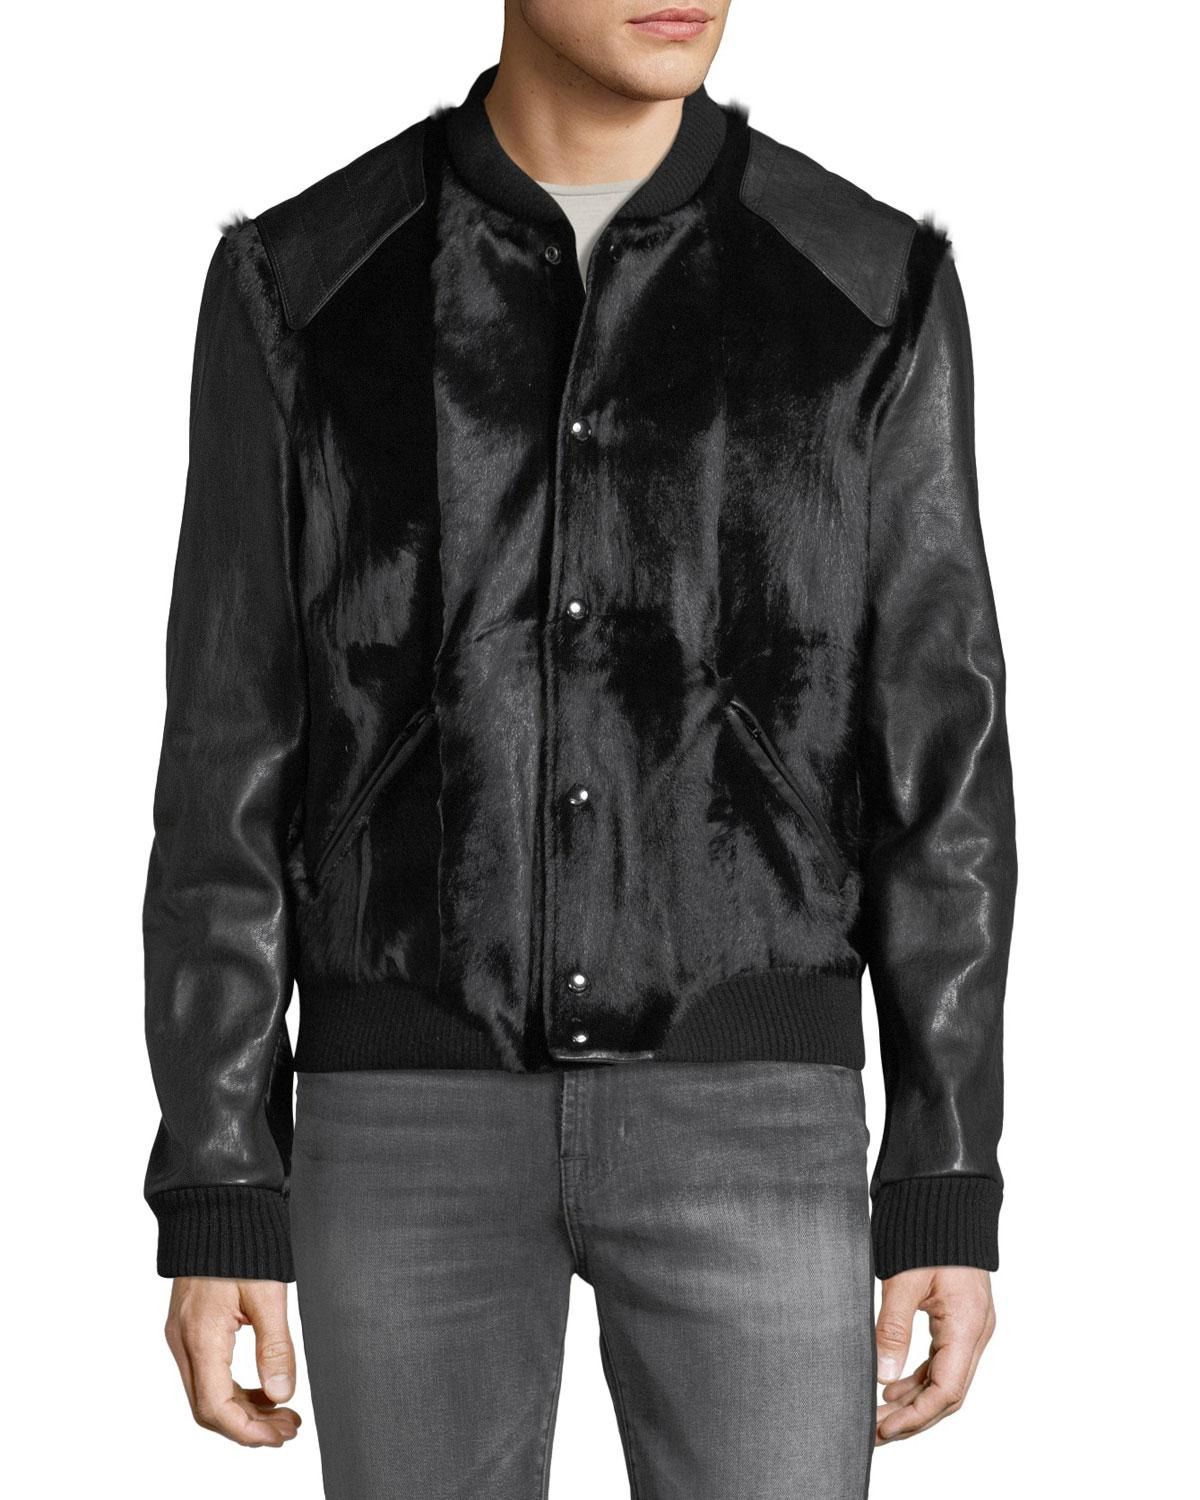 369d3fc38 Saint Laurent Men's Teddy Goatskin Bomber Jacket in Black for Men - Lyst